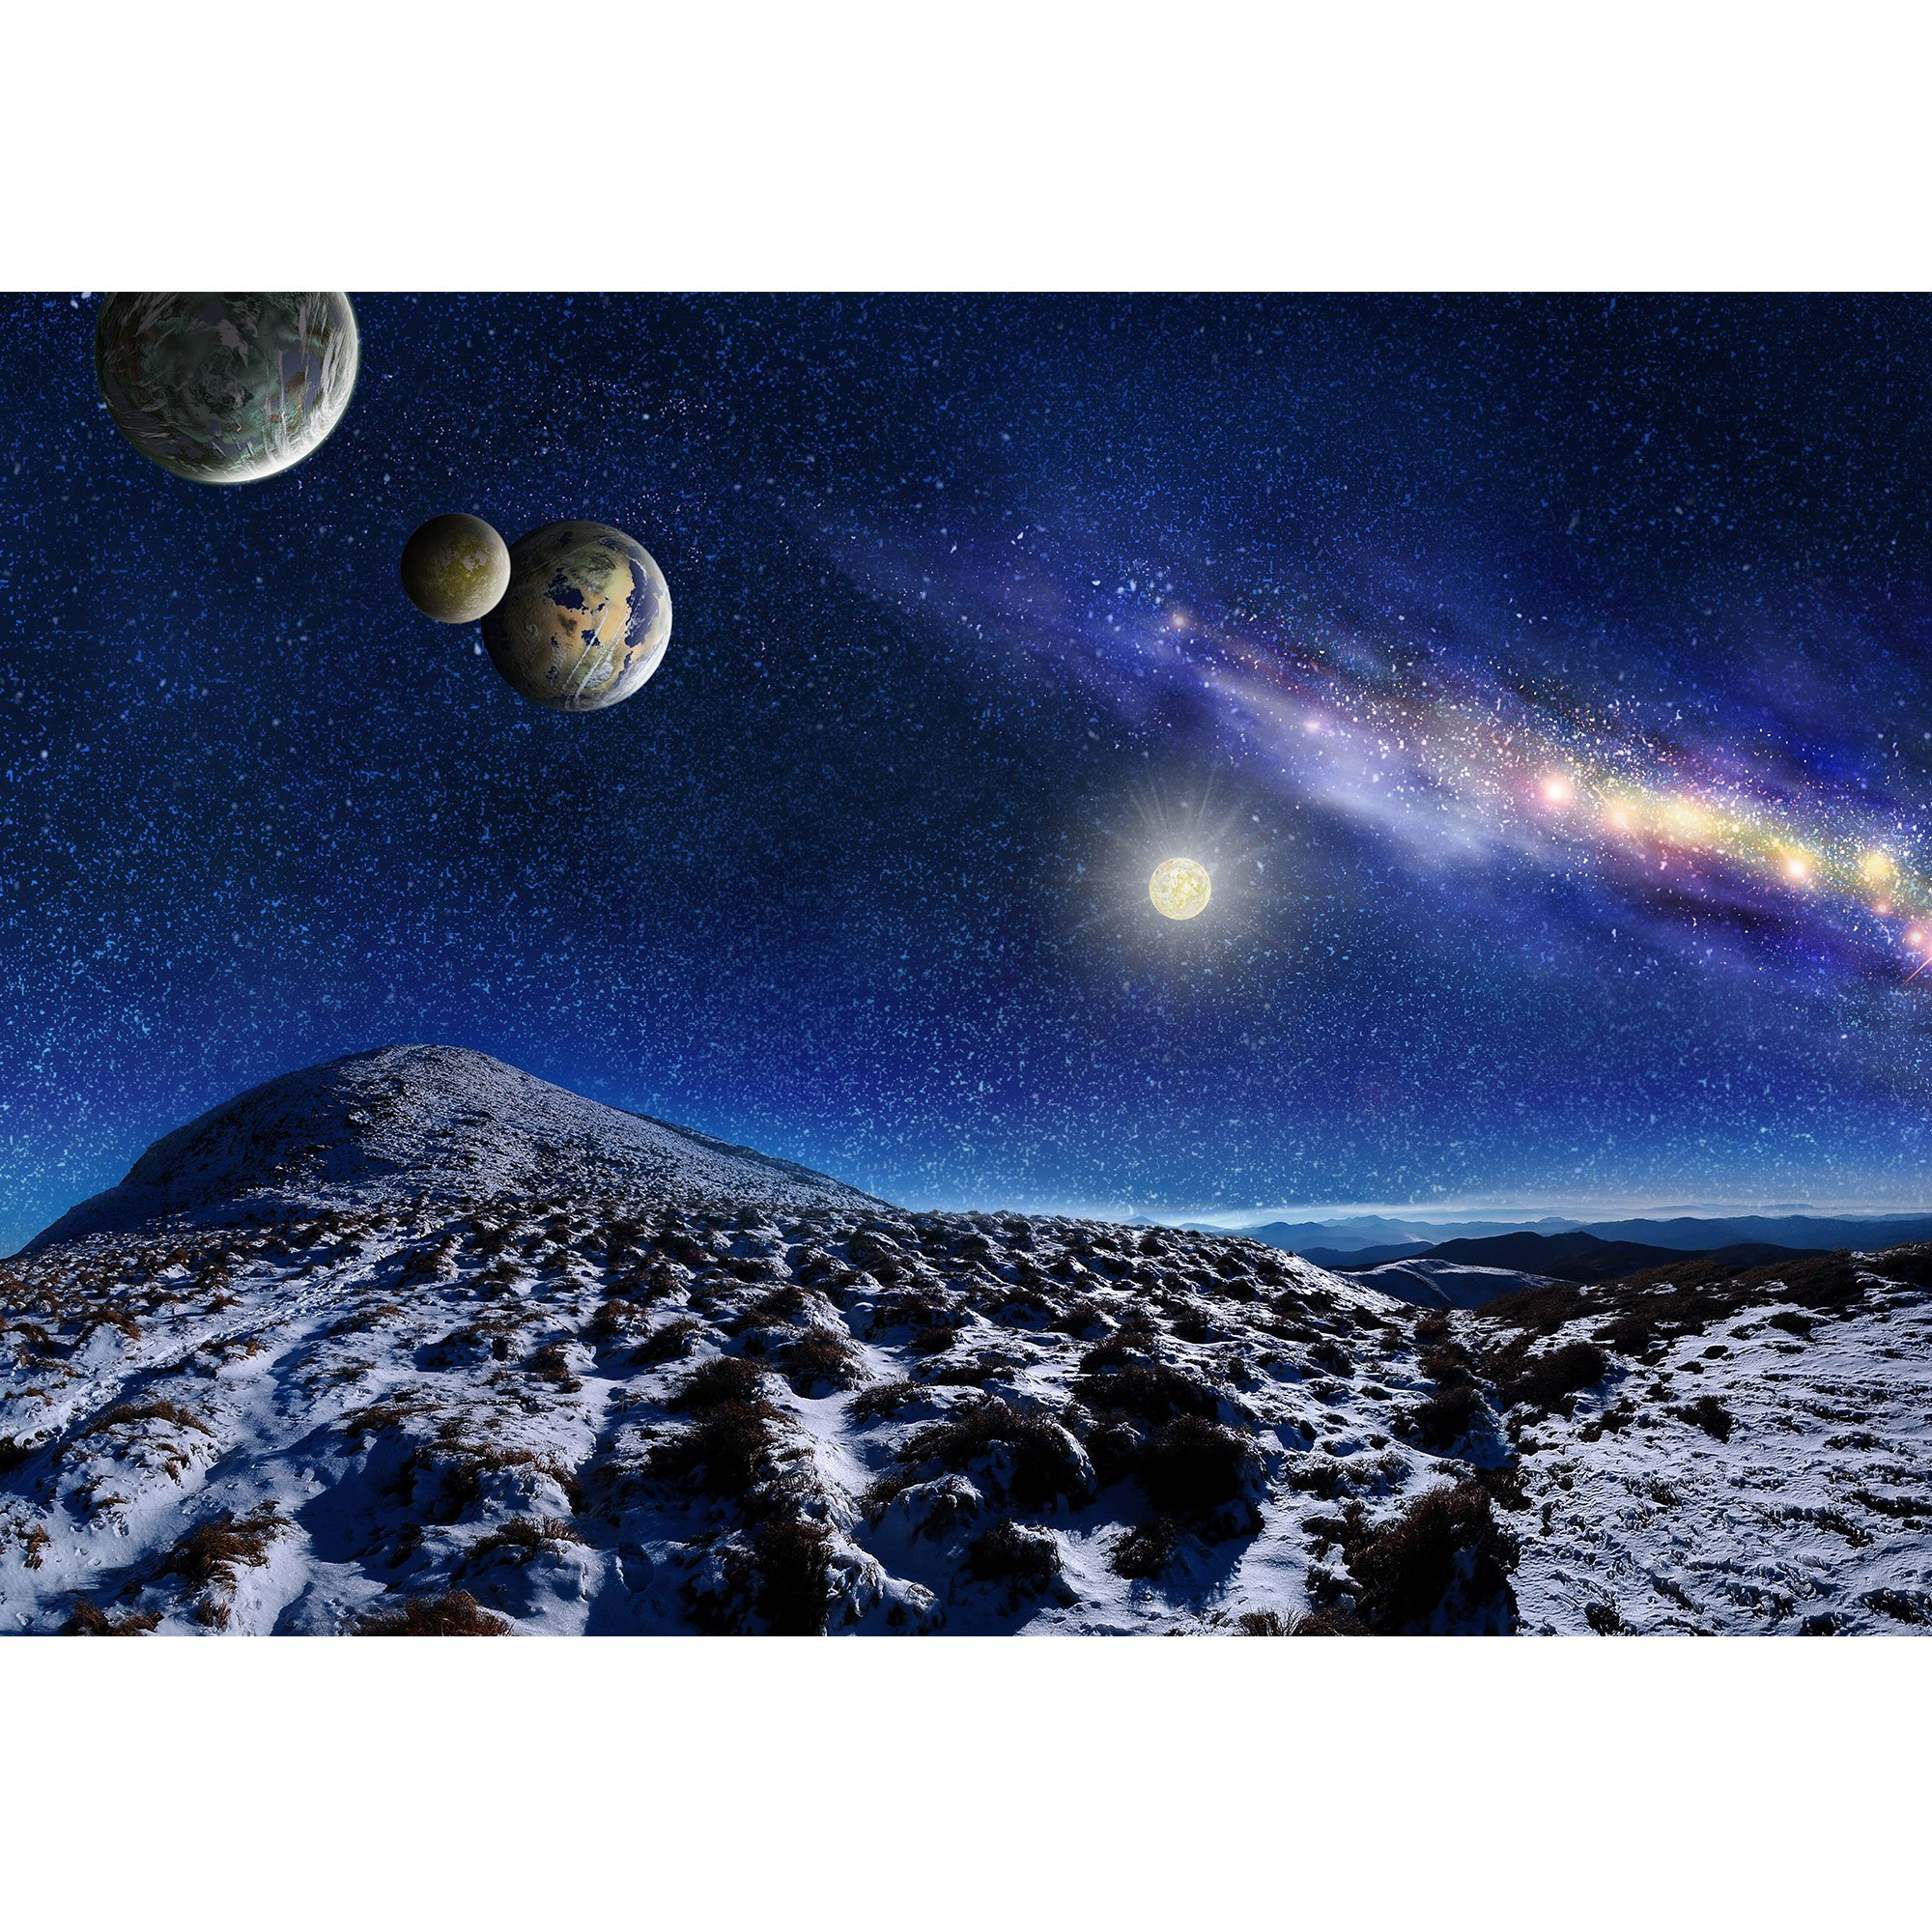 wall26 - Night Space Landscape. Milky Way Galaxy and Planets Over Mountains - Removable Wall Mural | Self-Adhesive Large Wallpaper - 100x144 inches by wall26 (Image #2)